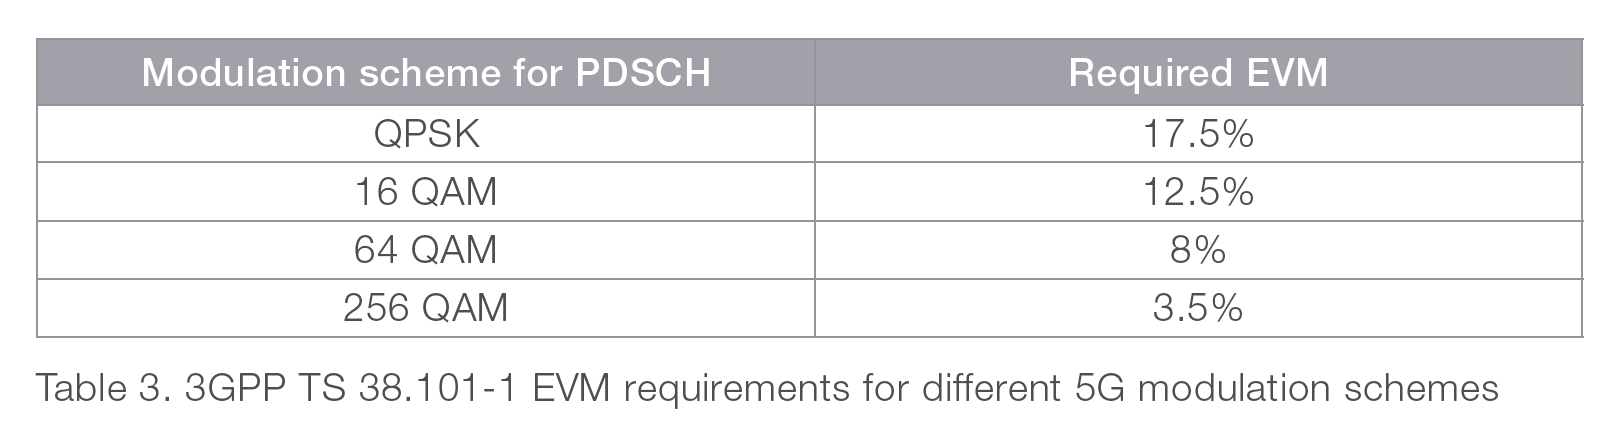 Table 3. 3GPP TS 38.101-1 EVM requirements for different 5G modulation schemes